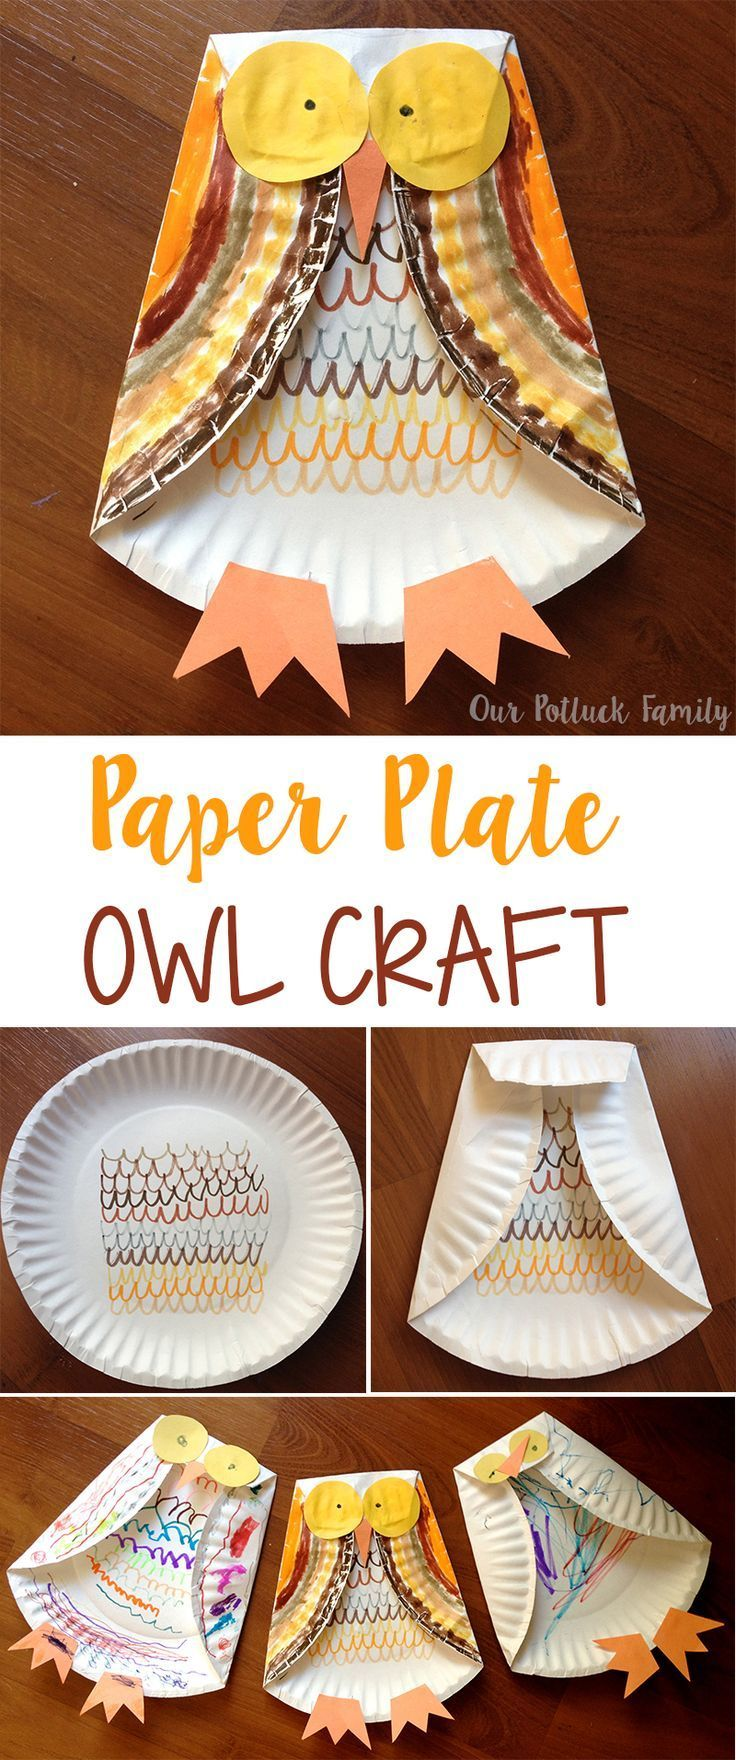 Paper Plate Owl  Huppie Mama - Fun fall crafts, Paper plate crafts for kids, Construction paper crafts, Fall crafts for kids, Paper plate crafts, Owl crafts - Stepbystep instructions for kids to create a paper plate owl using a paper plate, markers, crayons, and construction paper  It's the perfect fall craft!